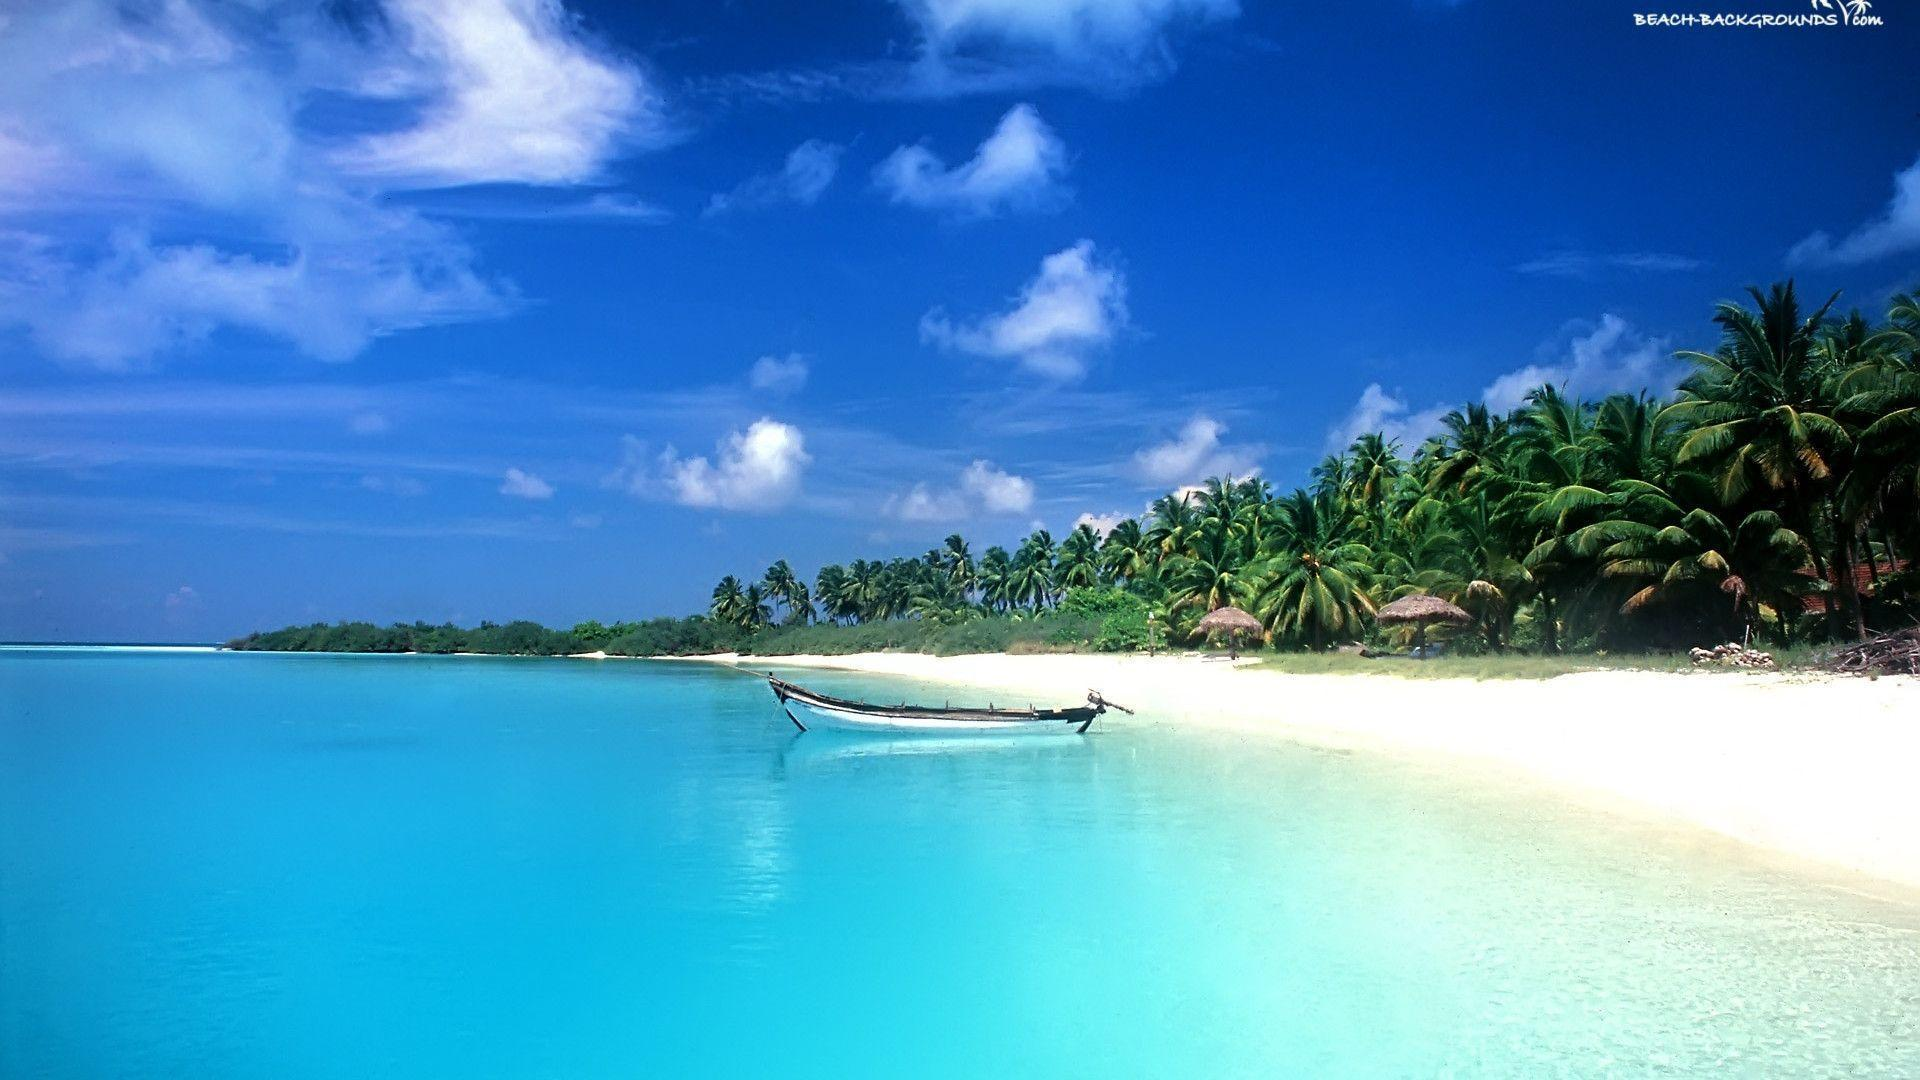 Hd wallpaper beach - Wallpapers For Beach Wallpaper 1920x1080